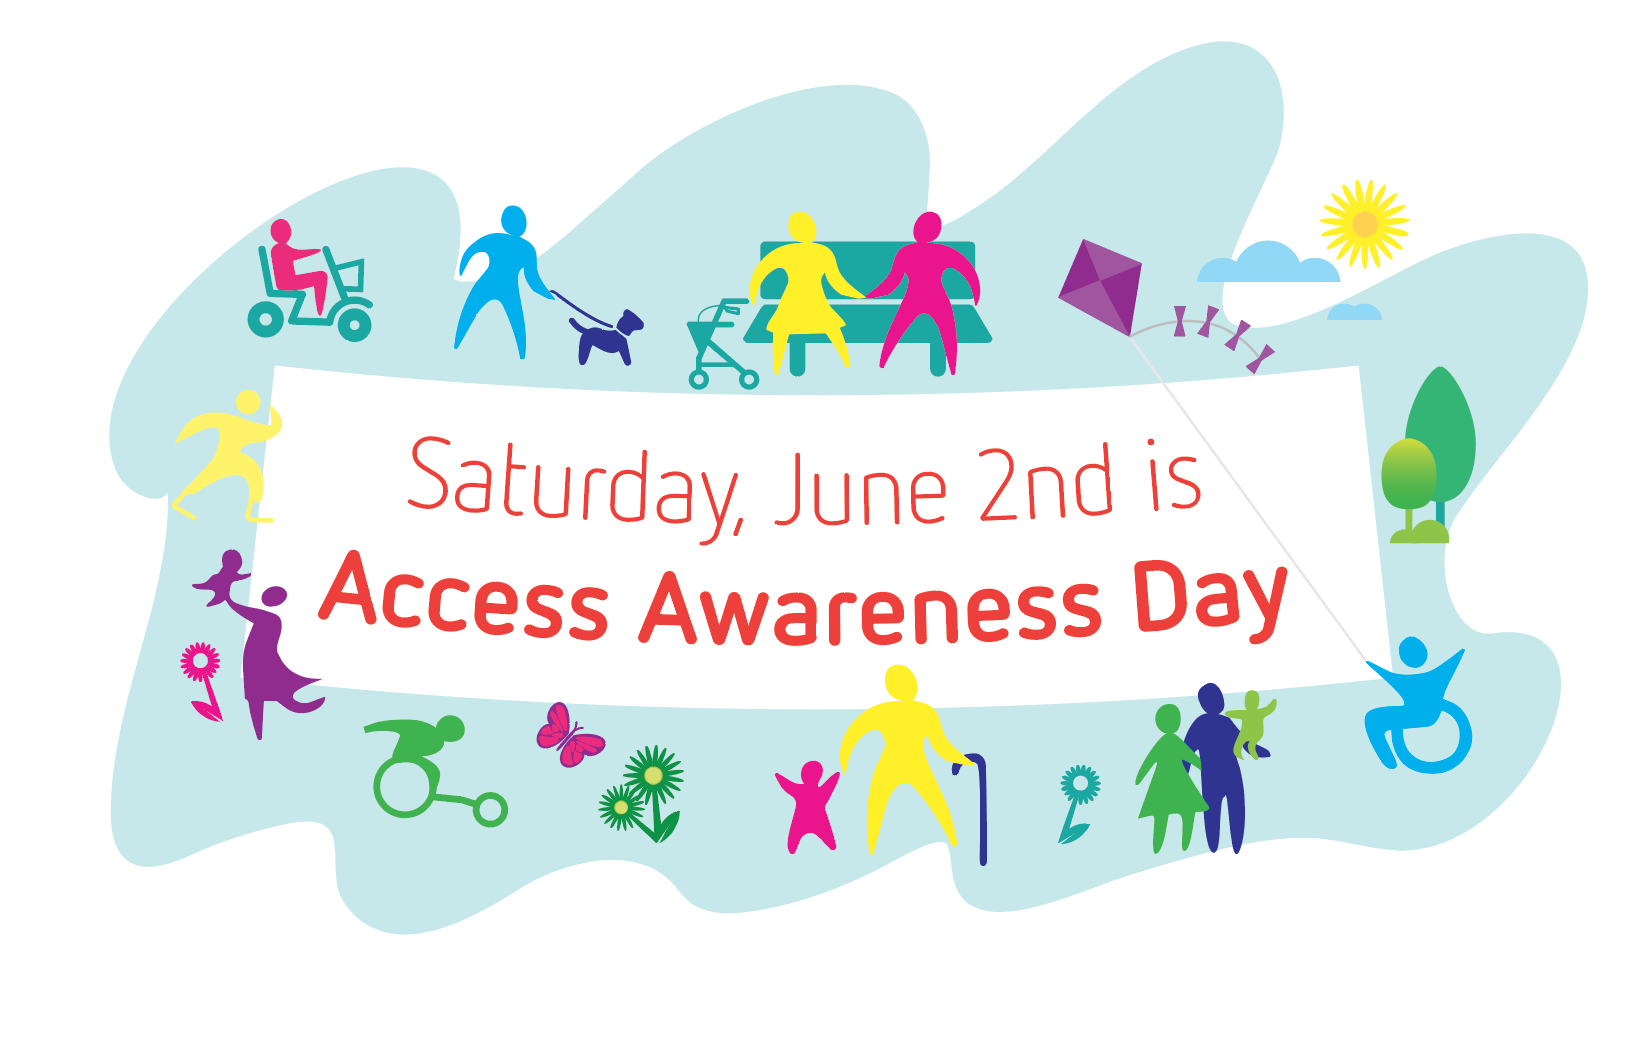 Saturday, June 2nd is Access Awareness Day